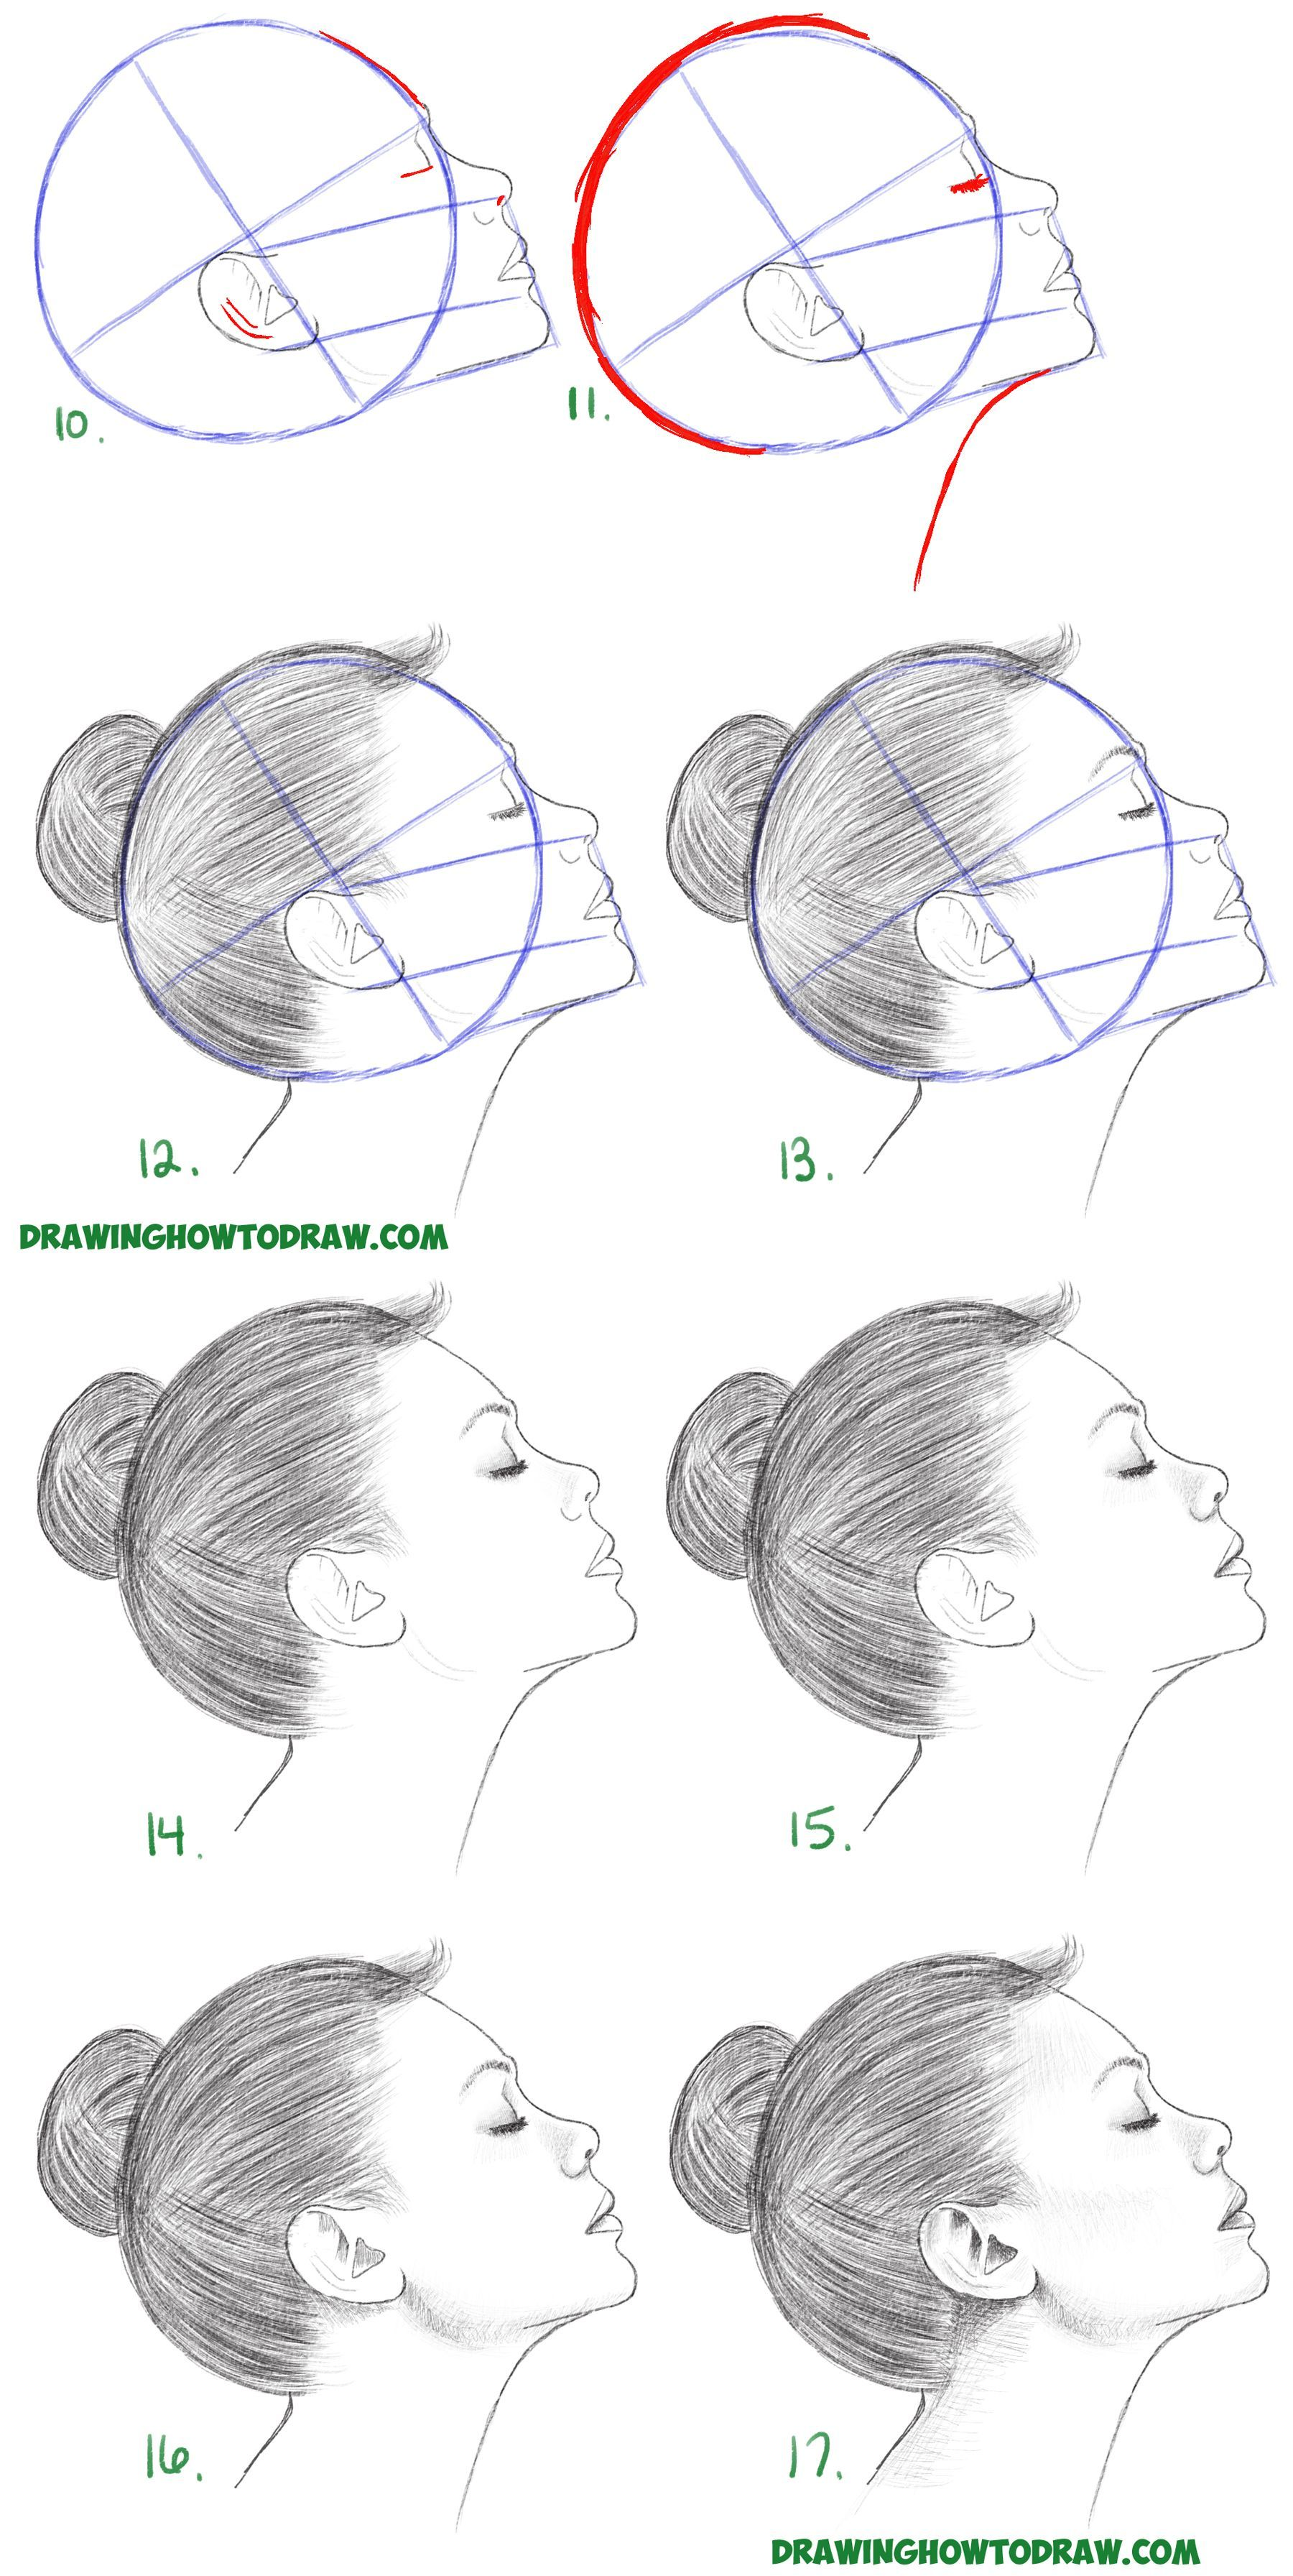 How To Draw A Face From The Side Profile View Female Girl Woman Easy Step By St In 2020 Drawing Tutorials For Beginners Drawing Tutorial Face Art Drawings Simple